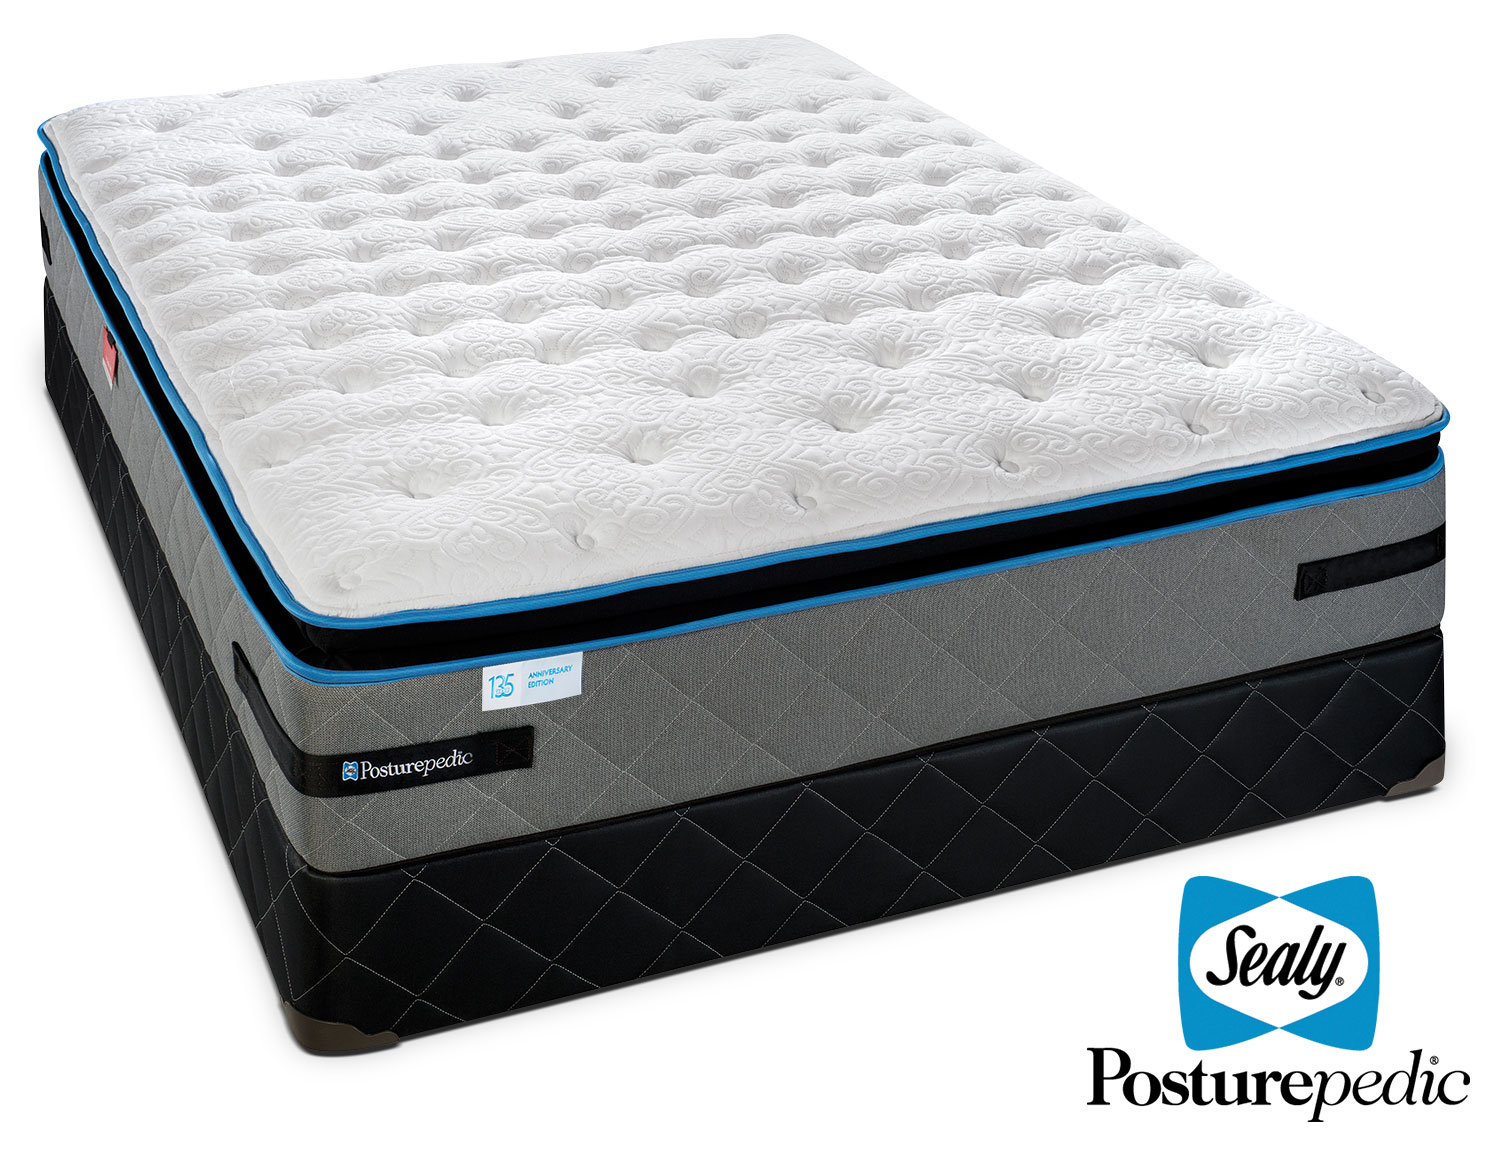 Mattresses and Bedding - Sealy Posturepedic Beaucoup Firm Queen Mattress/Boxspring Set